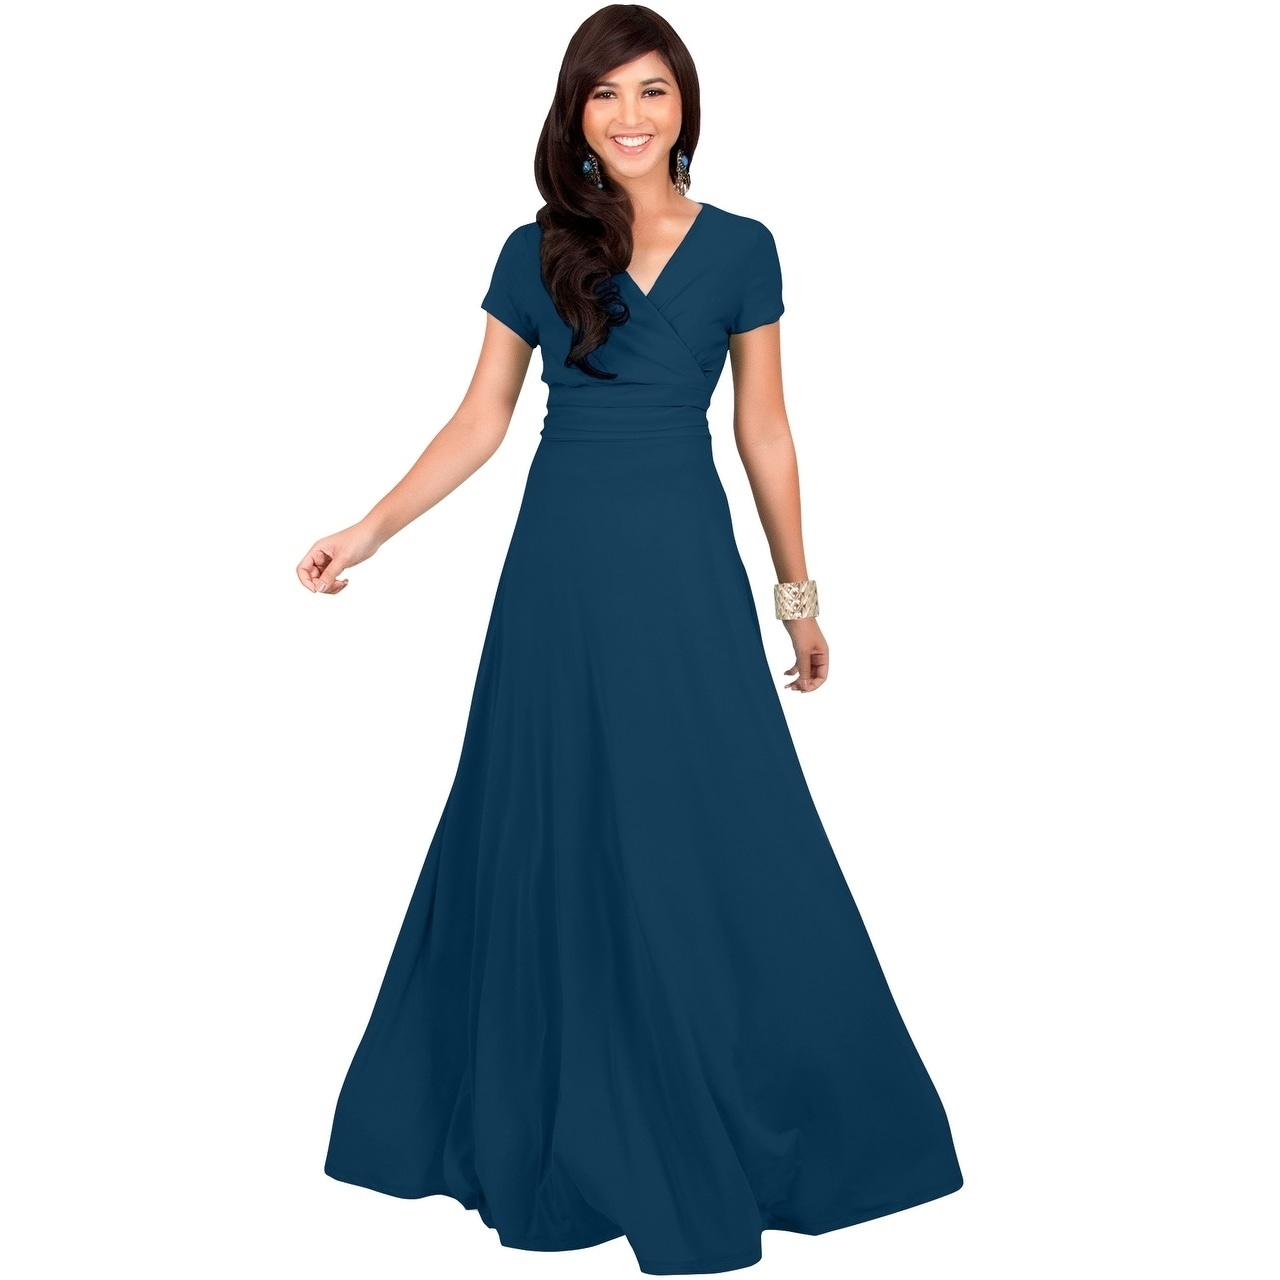 amazing selection hot-selling clearance top-rated genuine KOH KOH Women's Long Semi-Formal Short Cap Sleeve Maxi Dress Gown